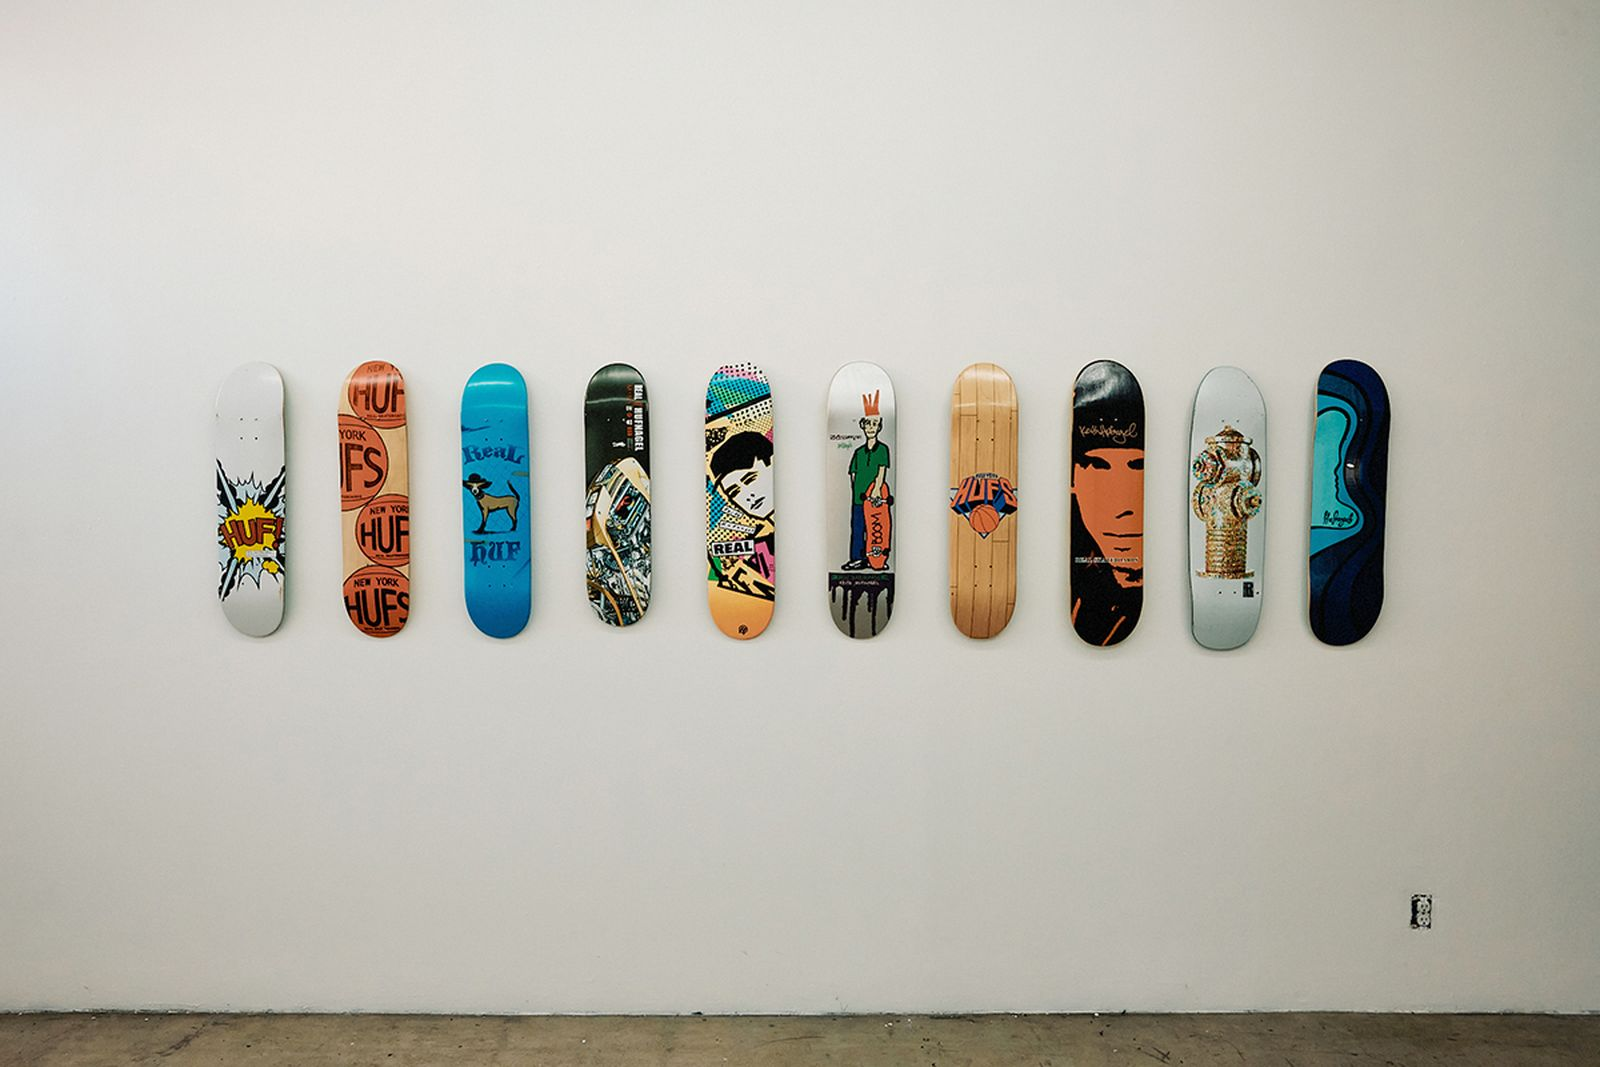 huf-forever-exhibition-keith-hufnagel-07